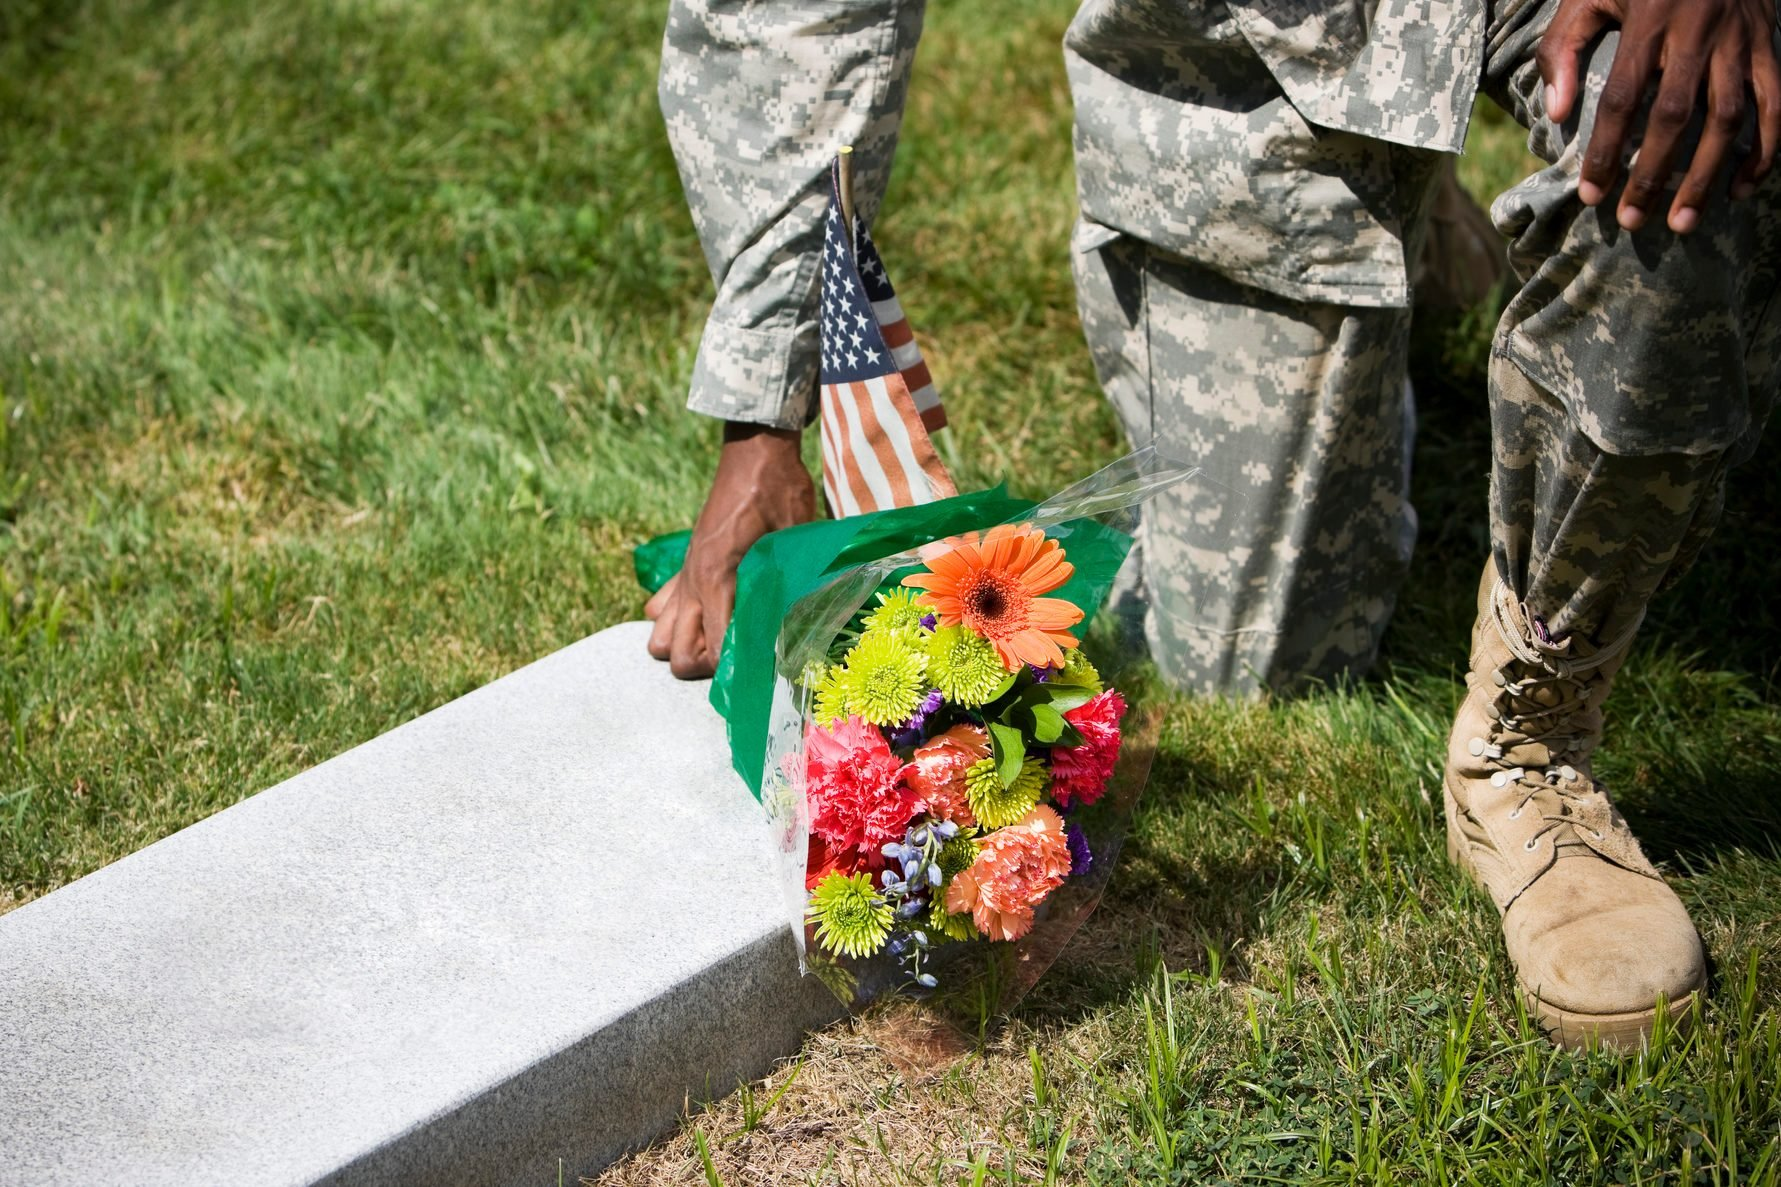 African American Army Soldier Kneeling with Flower Bouquet at Grave